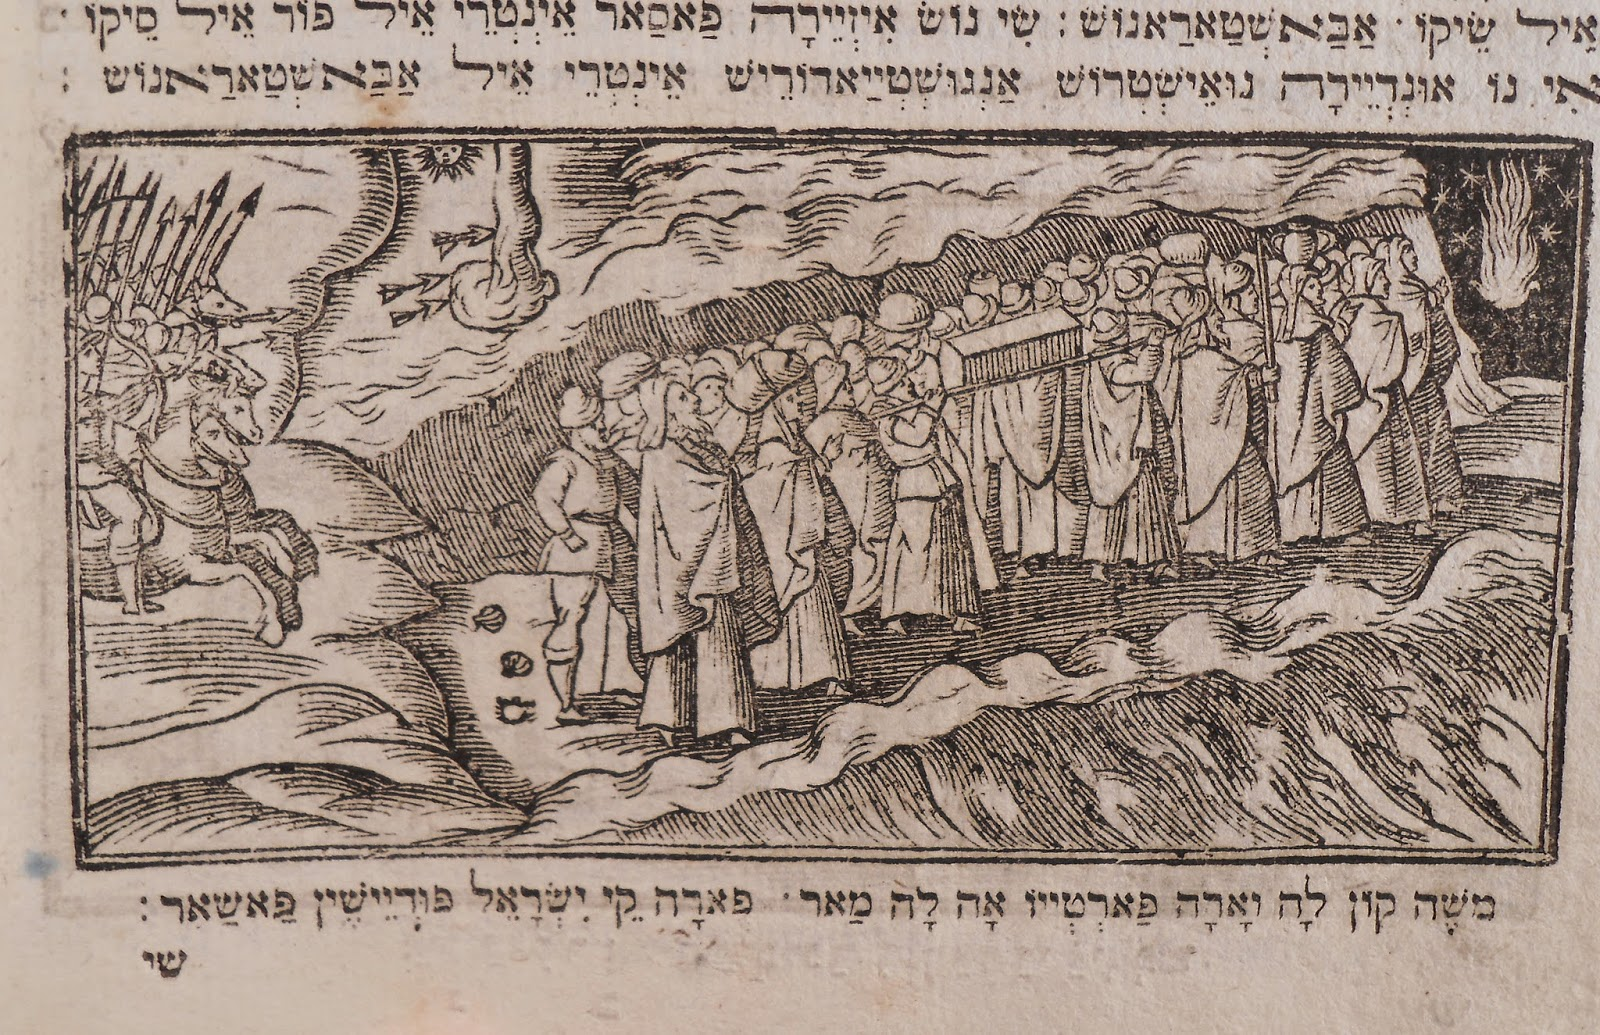 A woodcut illustration of a group traveling on foot, surrounded by printed Hebrew text.